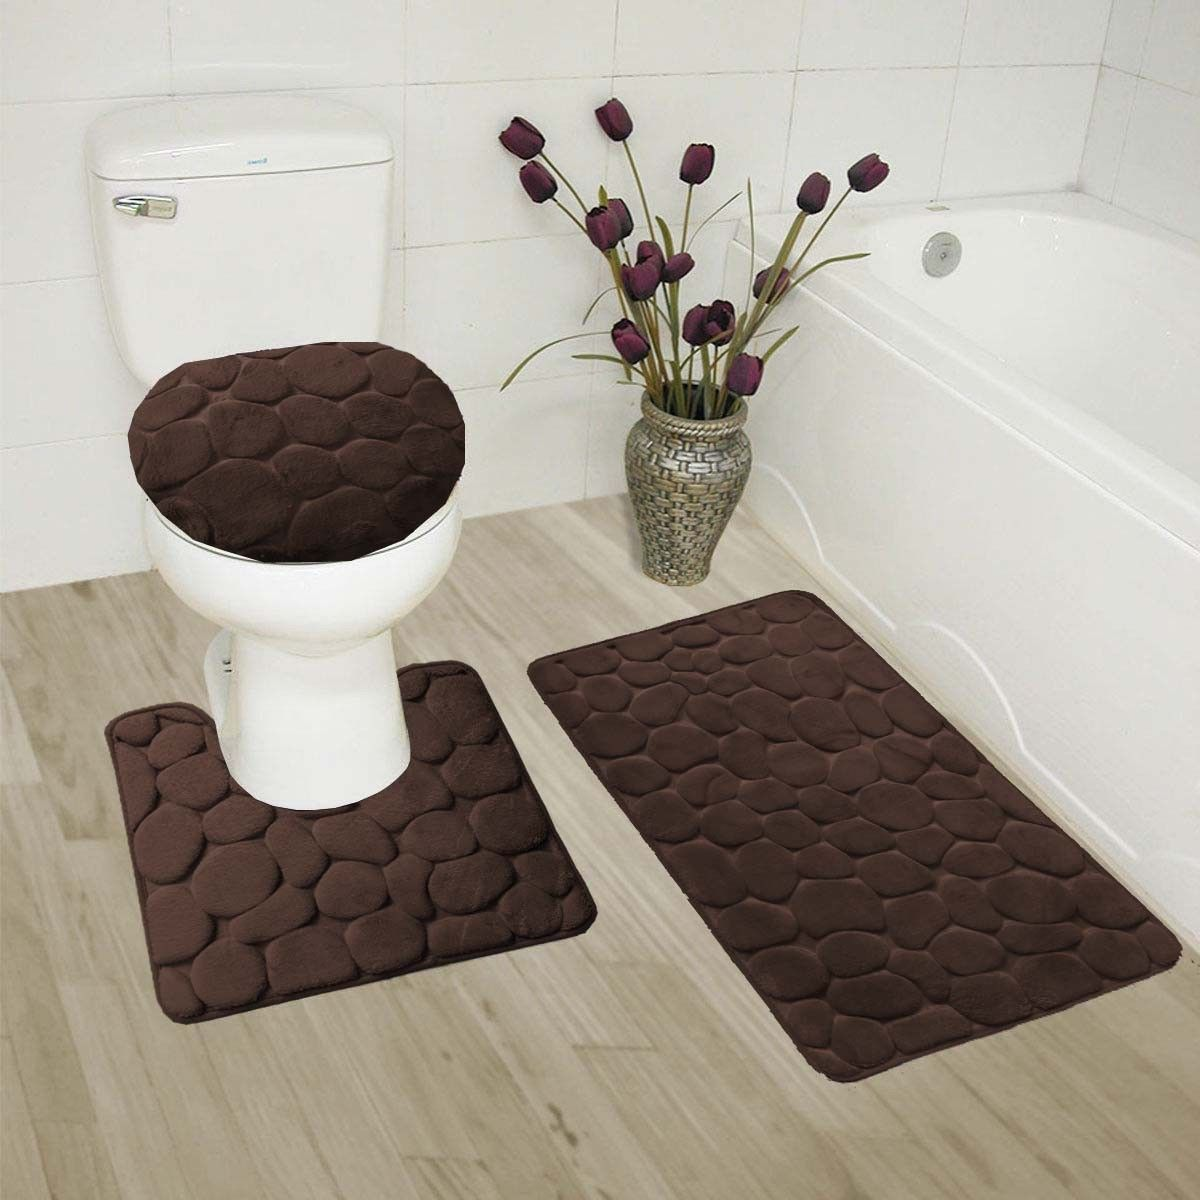 Bathmats Rugs And Toilet Covers 133696 Rock Coffee 3pc Embossed